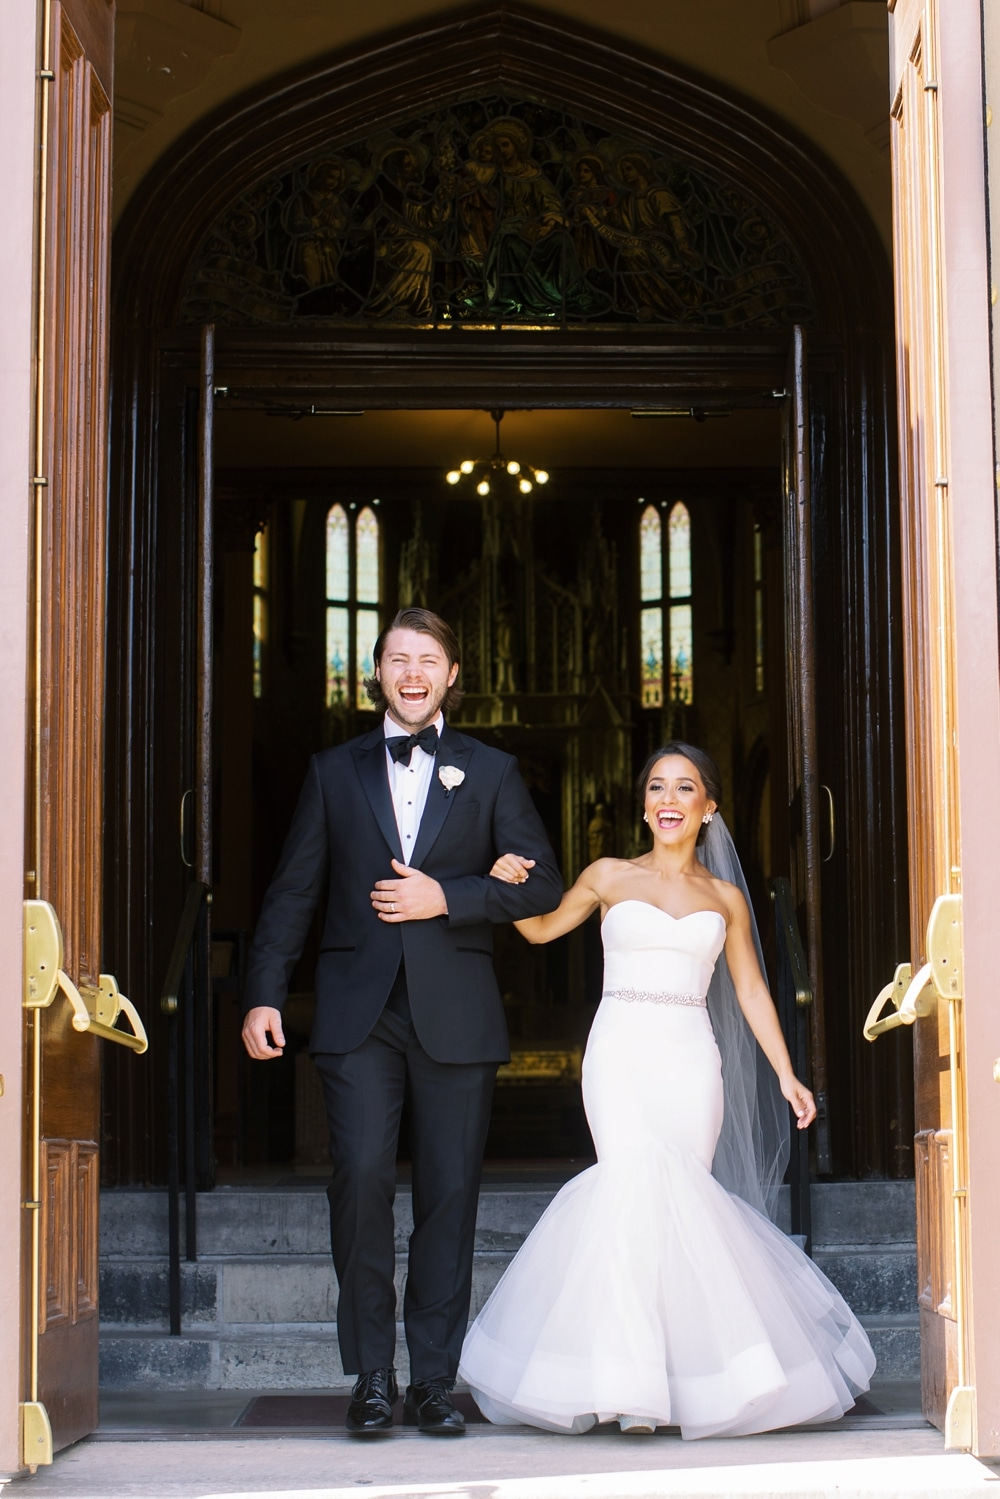 kristin-la-voie-photography-Chicago-Intercontinental-Wedding-holy-family-photos-165